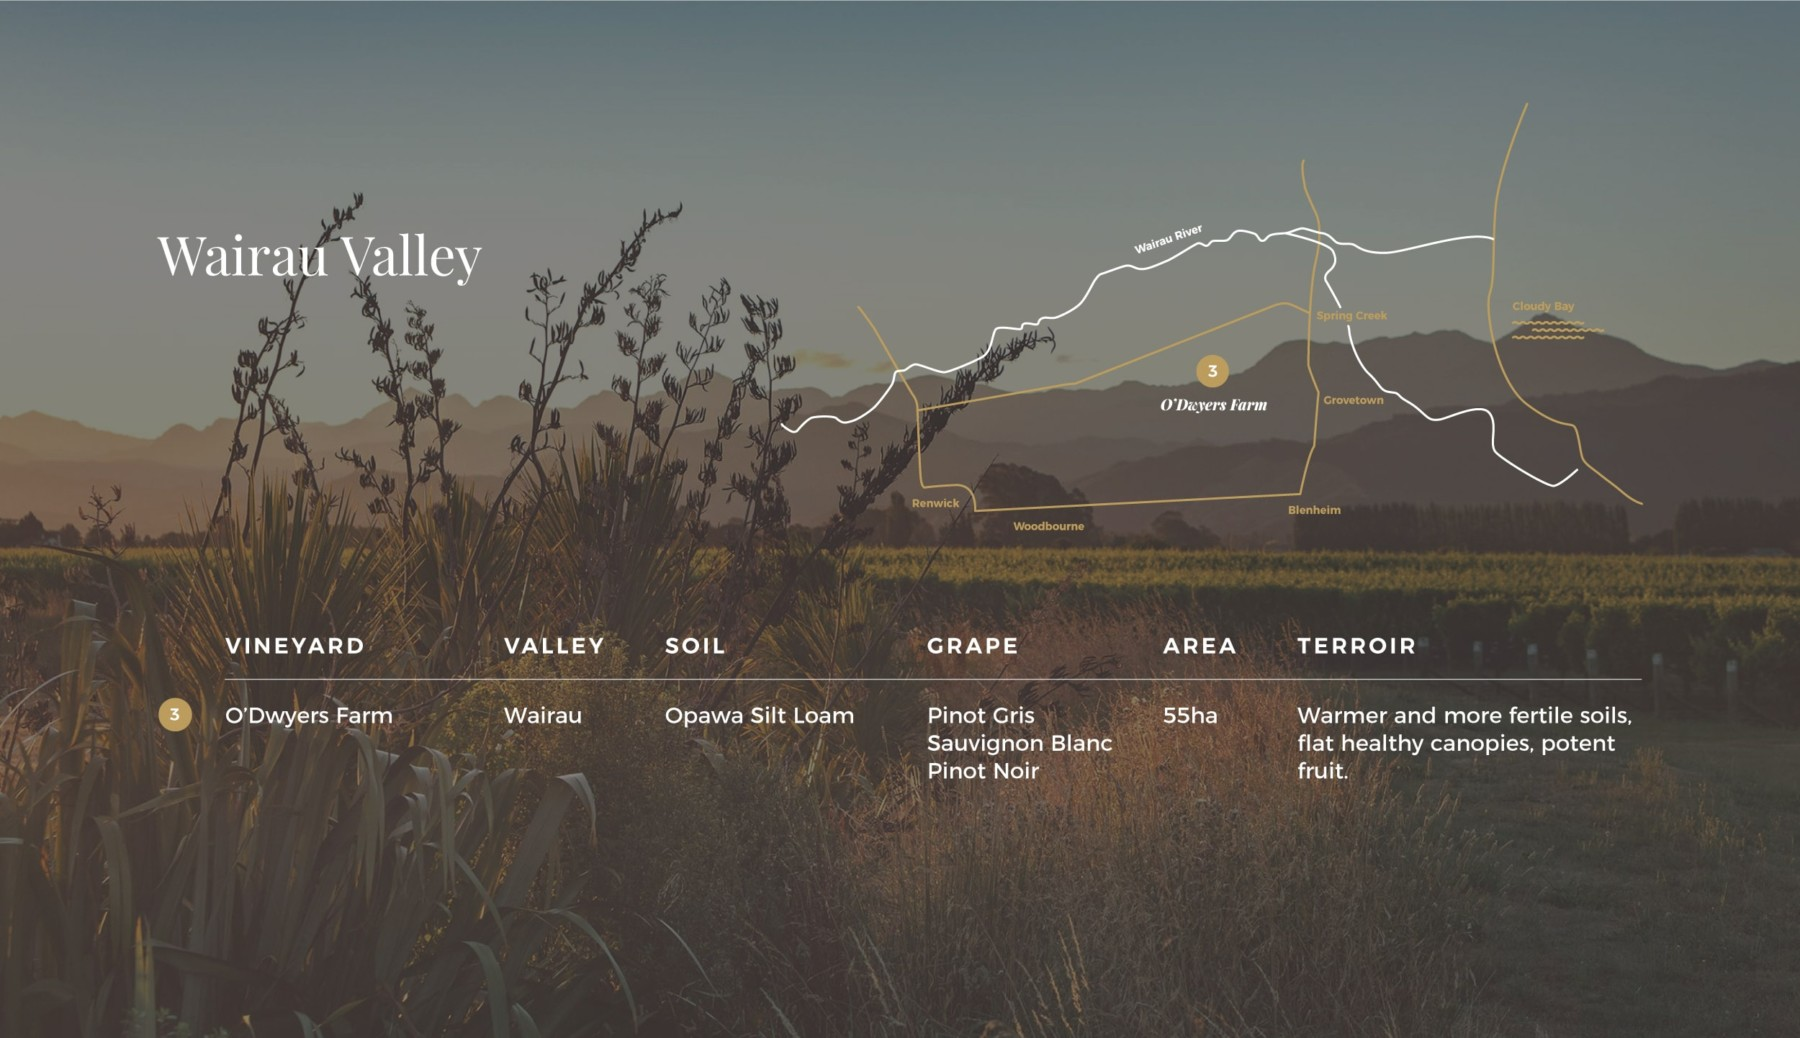 Map of Wairau Valley over laid on image of flax flowers in front of vines and Richmond Ranges at dusk